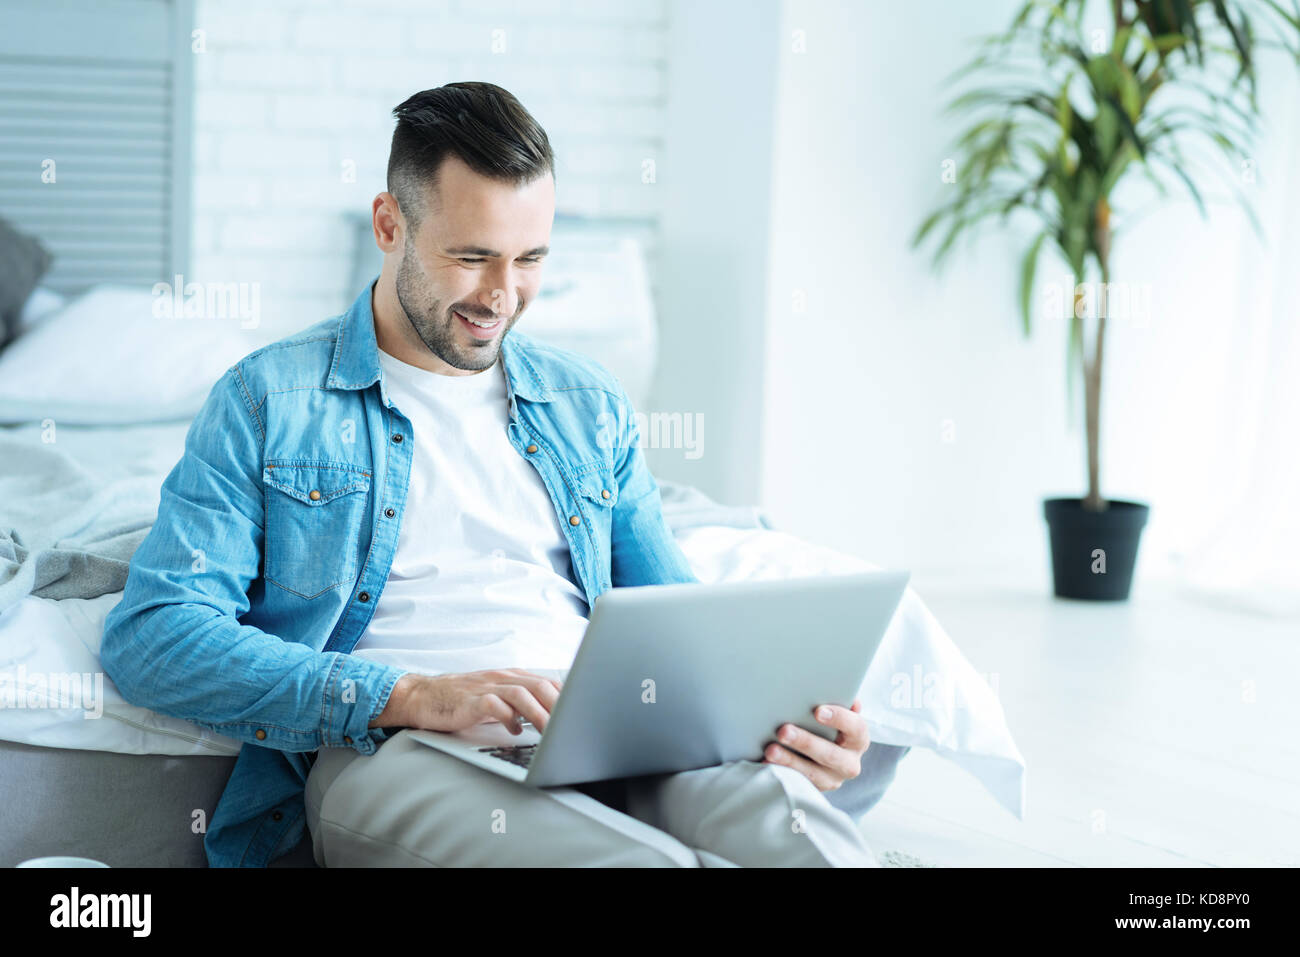 L'homme joyeux souriant largement while using laptop Photo Stock